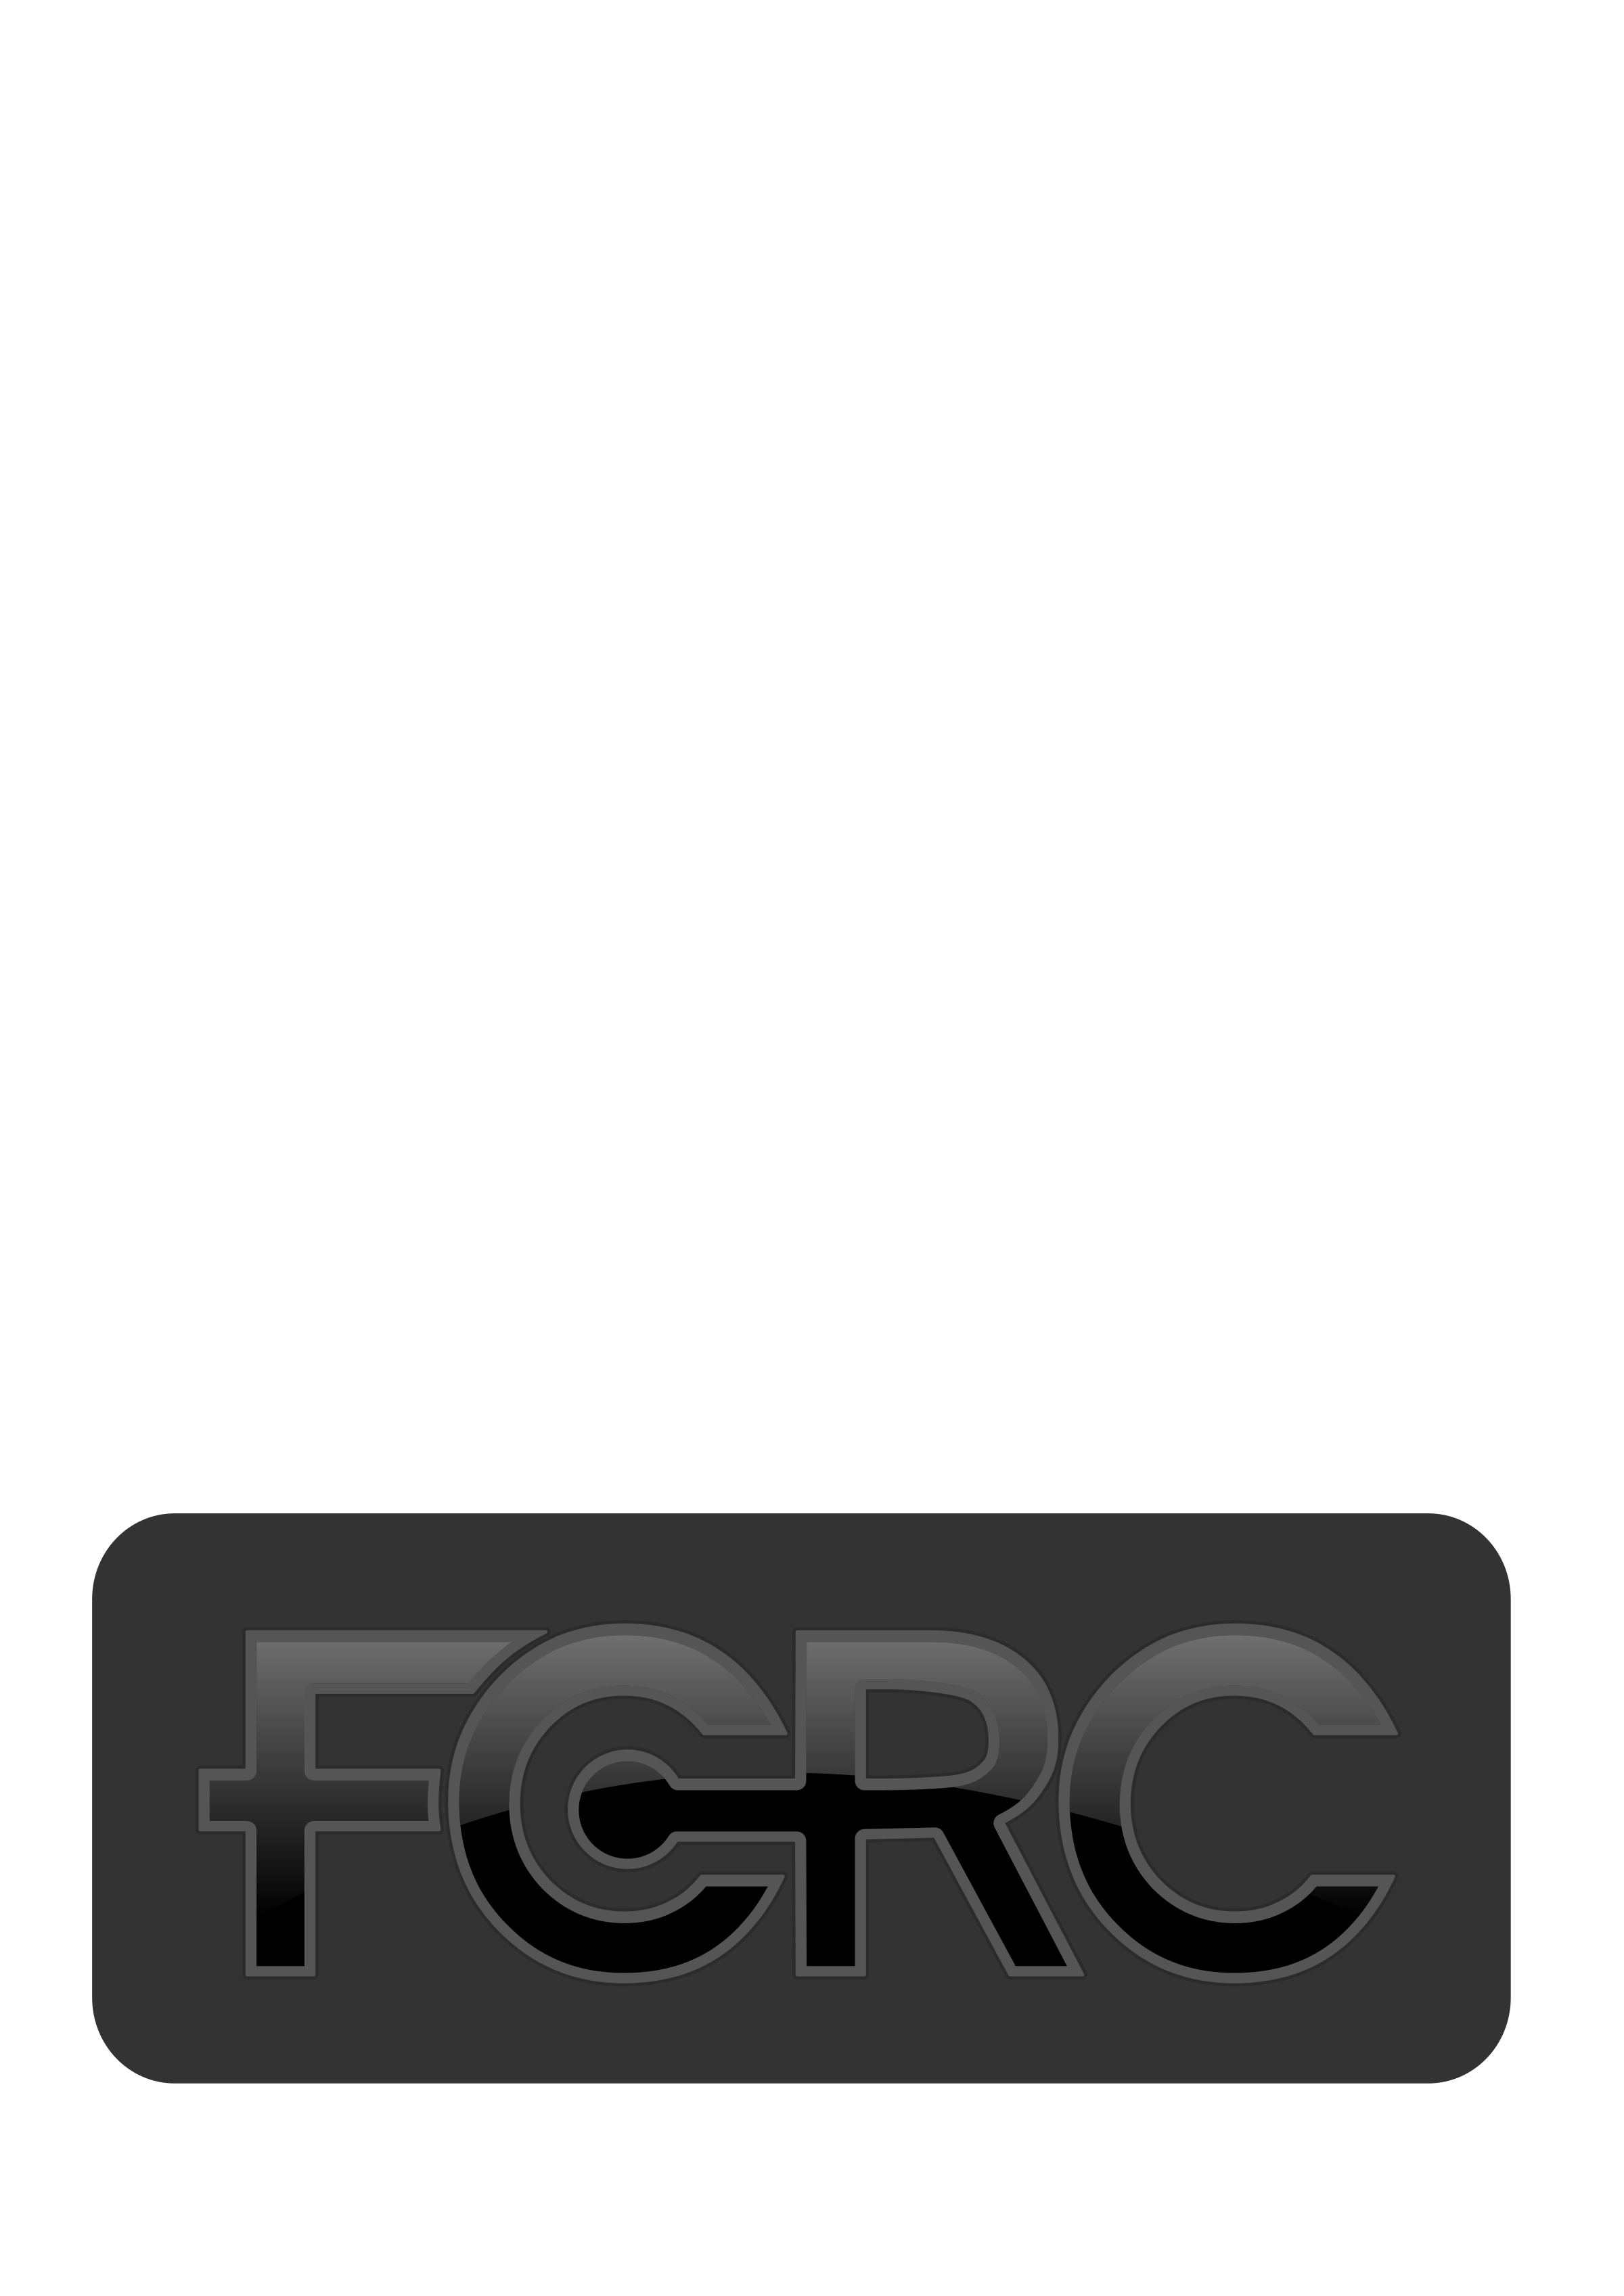 FCRC logo text 1 by timeth